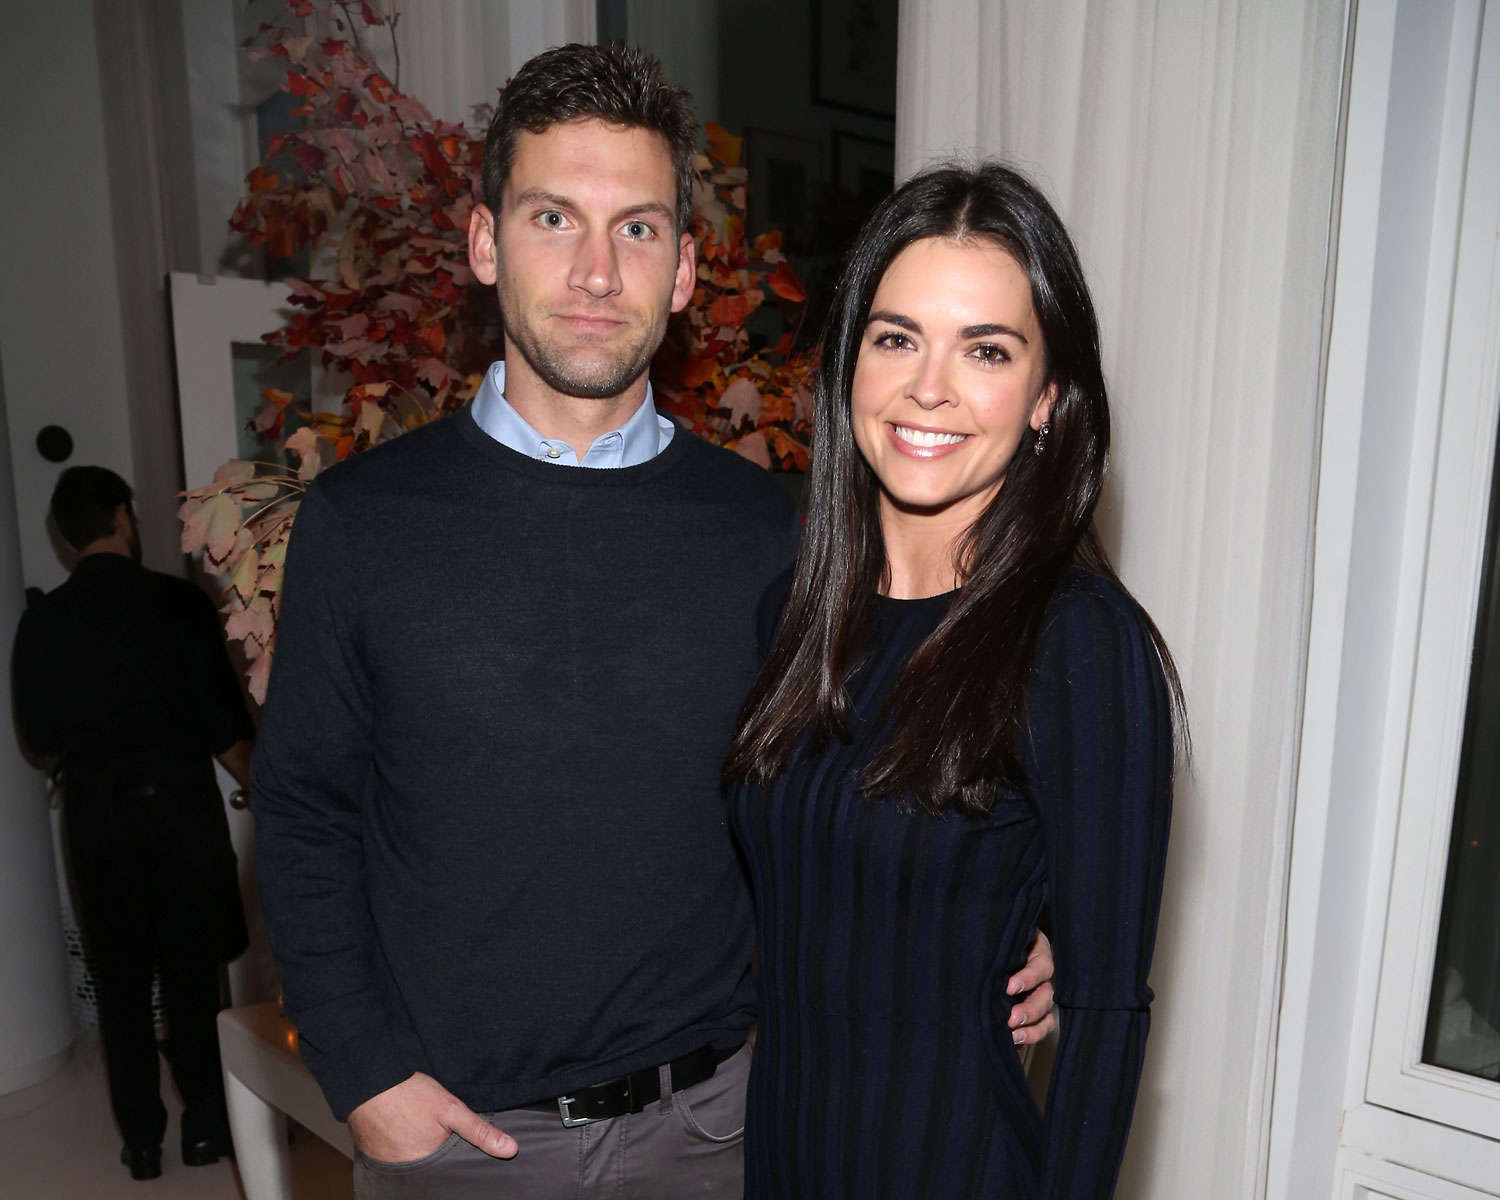 Food Network Personality Katie Lee Is Engaged To Producer